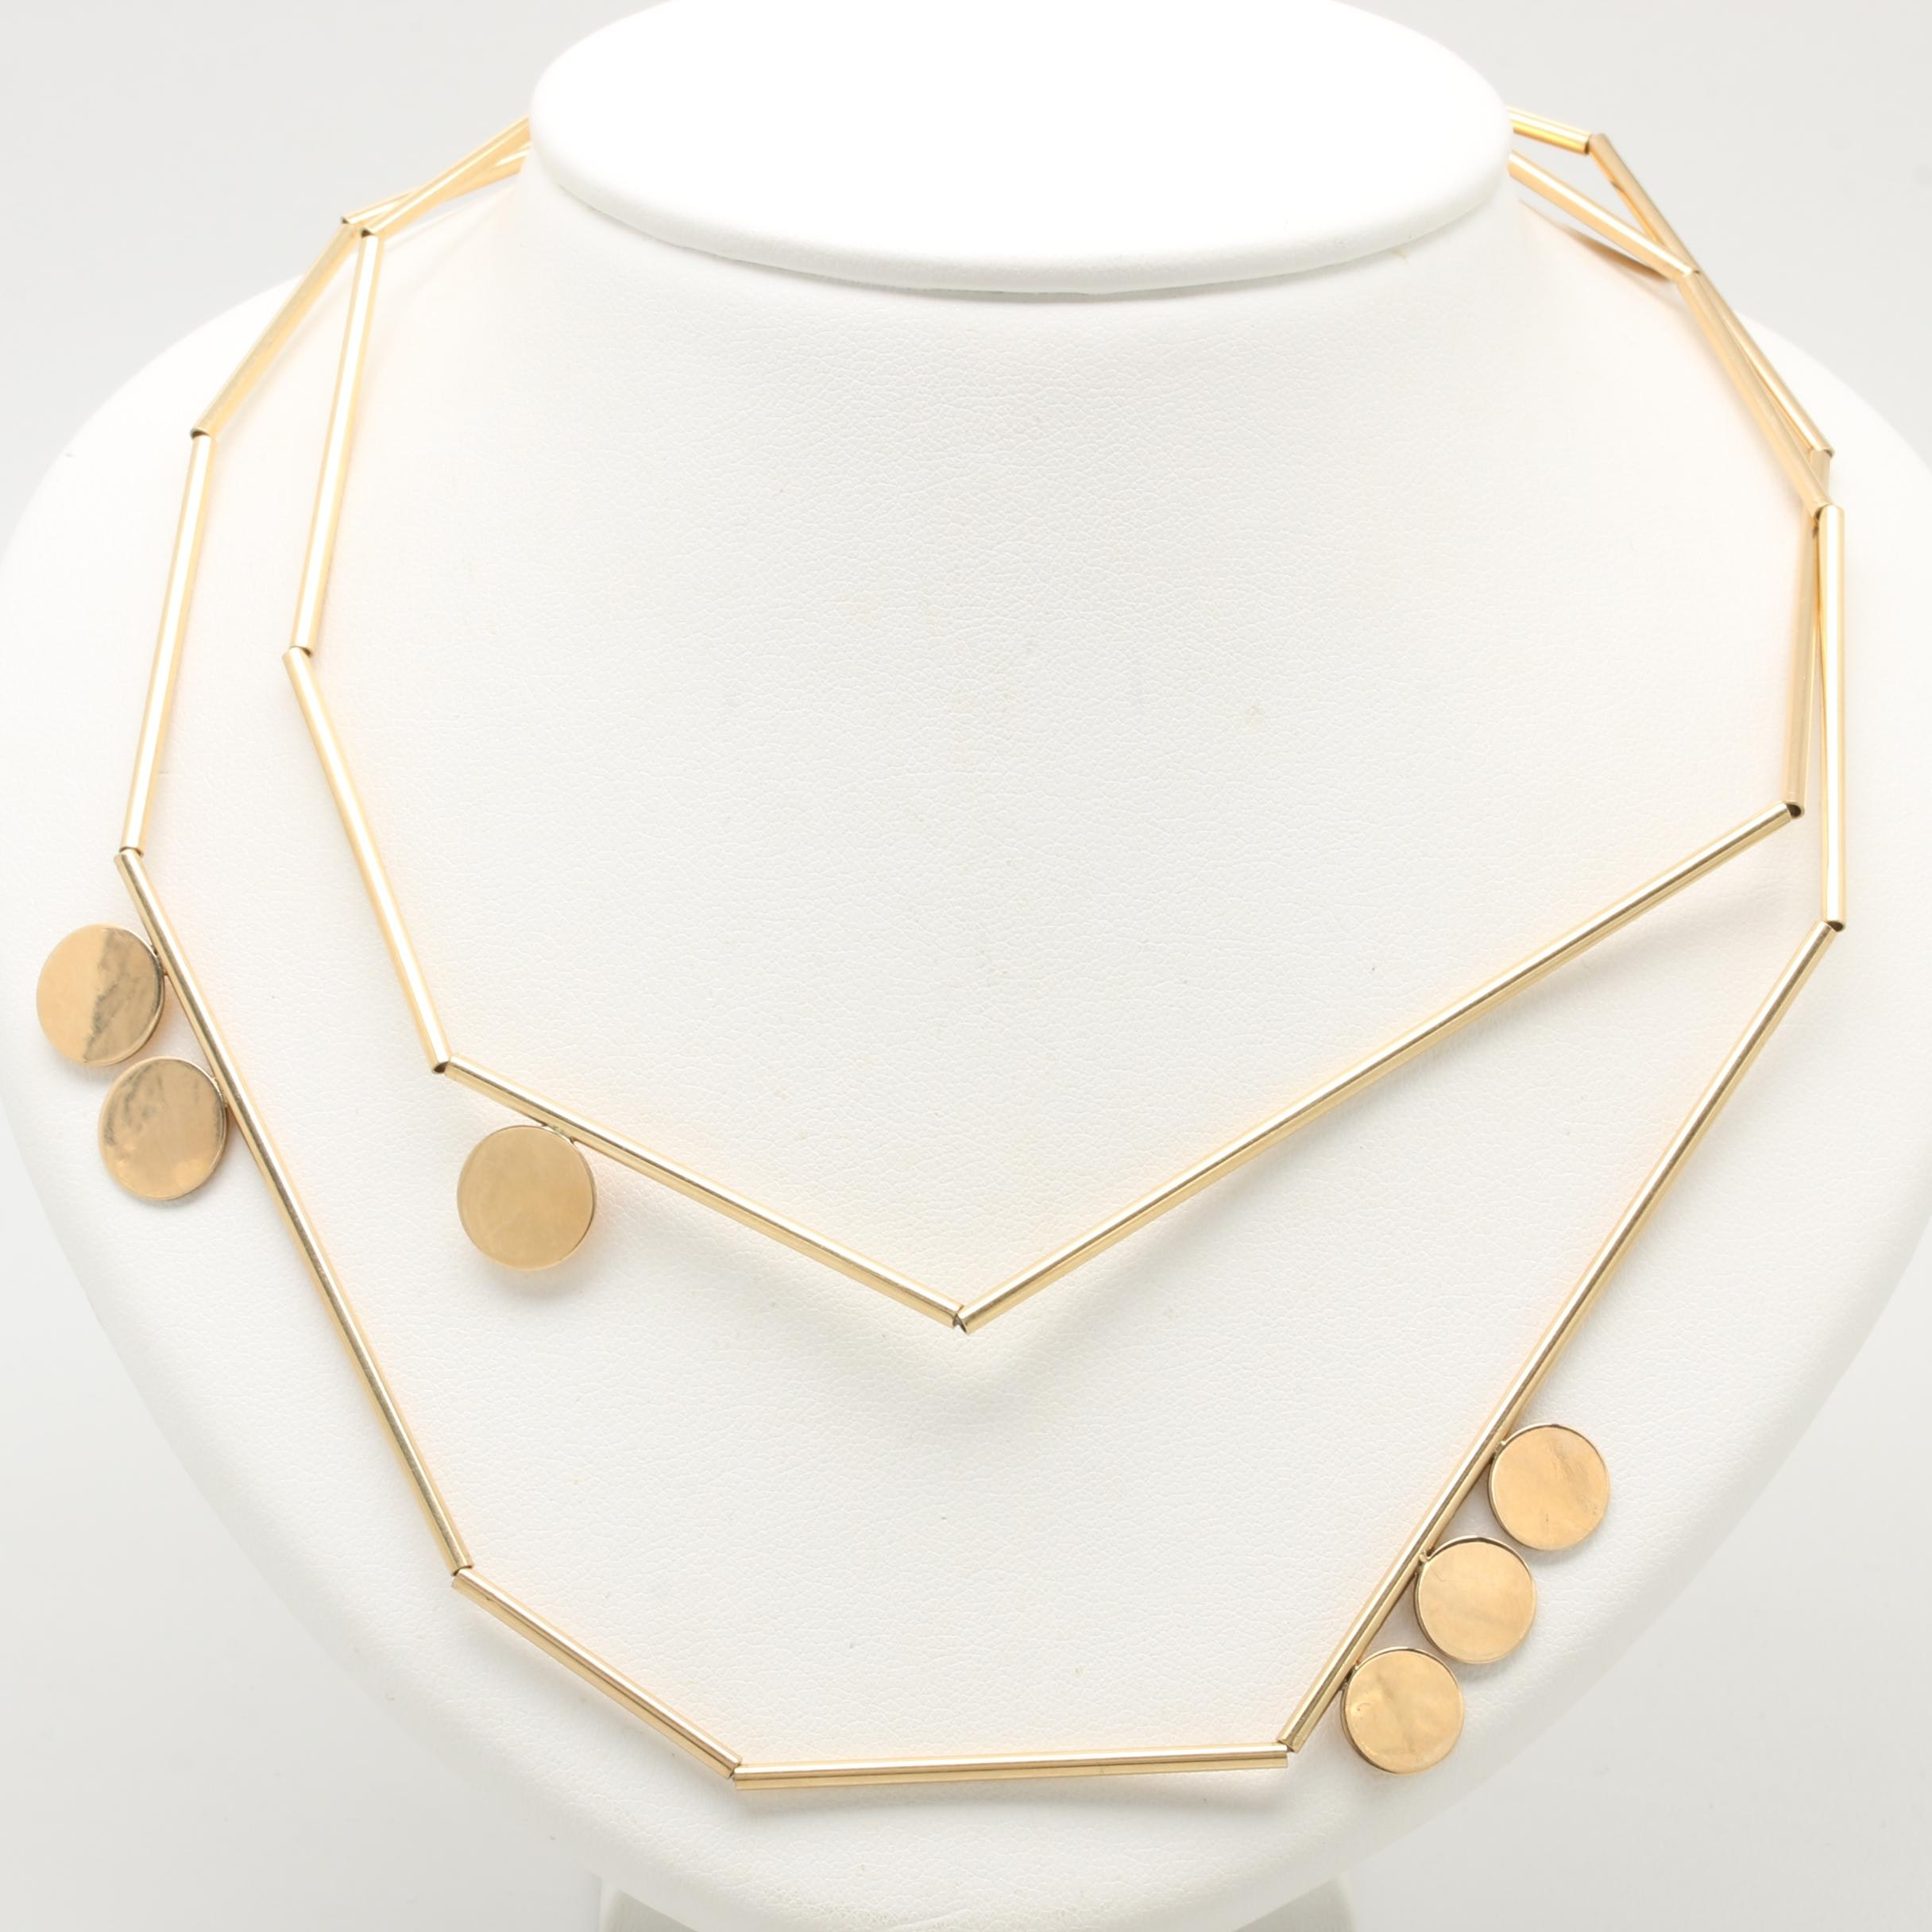 Circa 1960s Modernist Betty Cooke 14K Yellow Gold Necklace